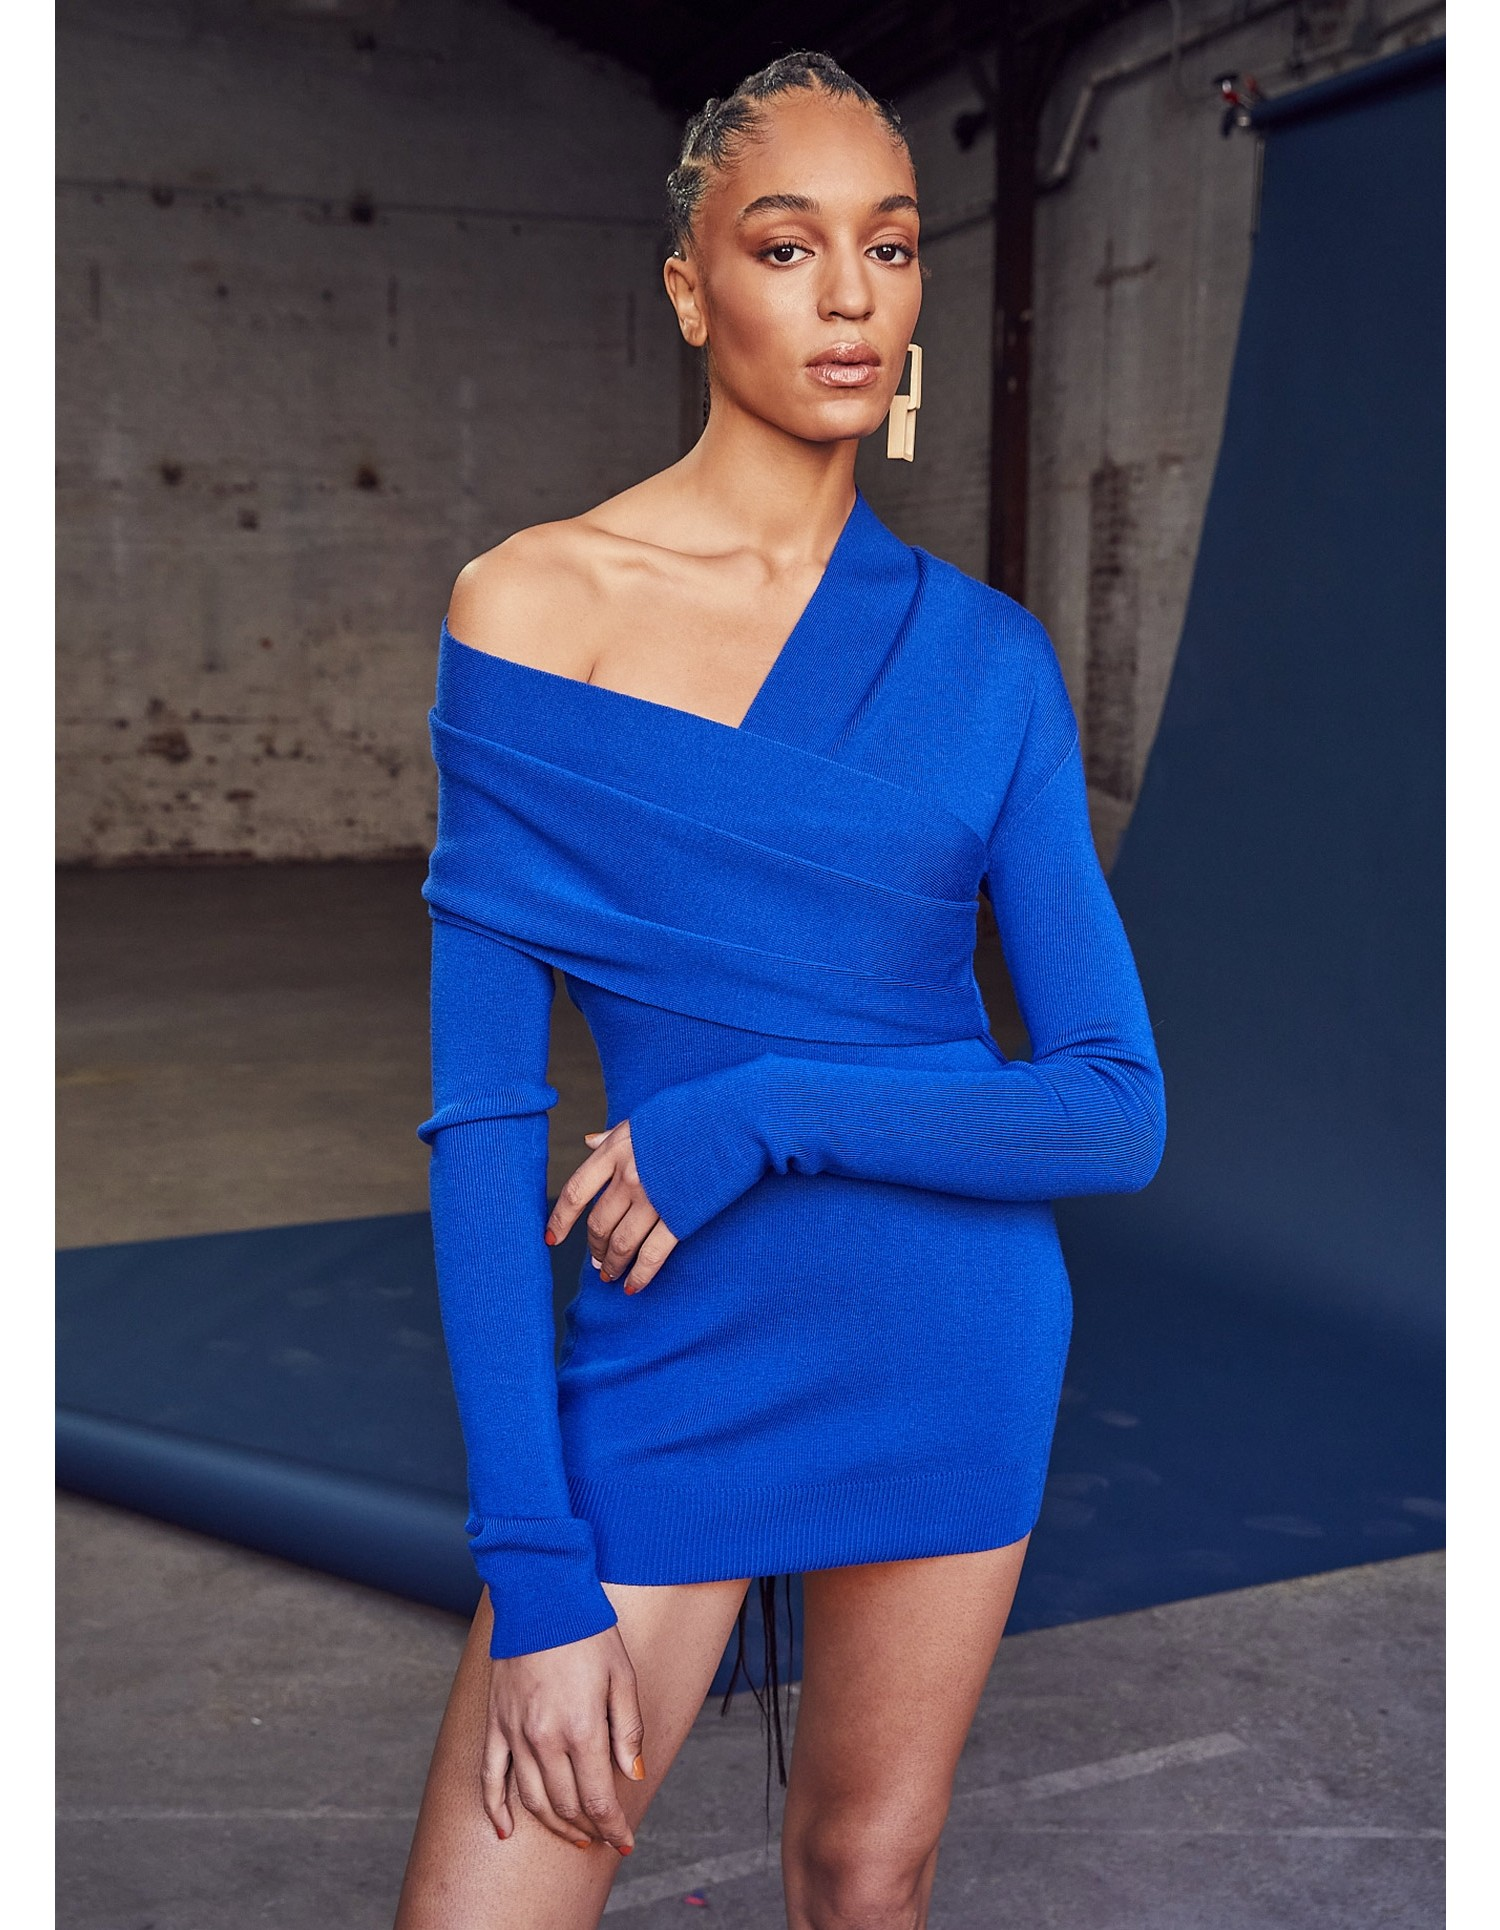 MONSE Twisted Wrap Collar Knit Mini Dress in Electric Blue on Model Front View